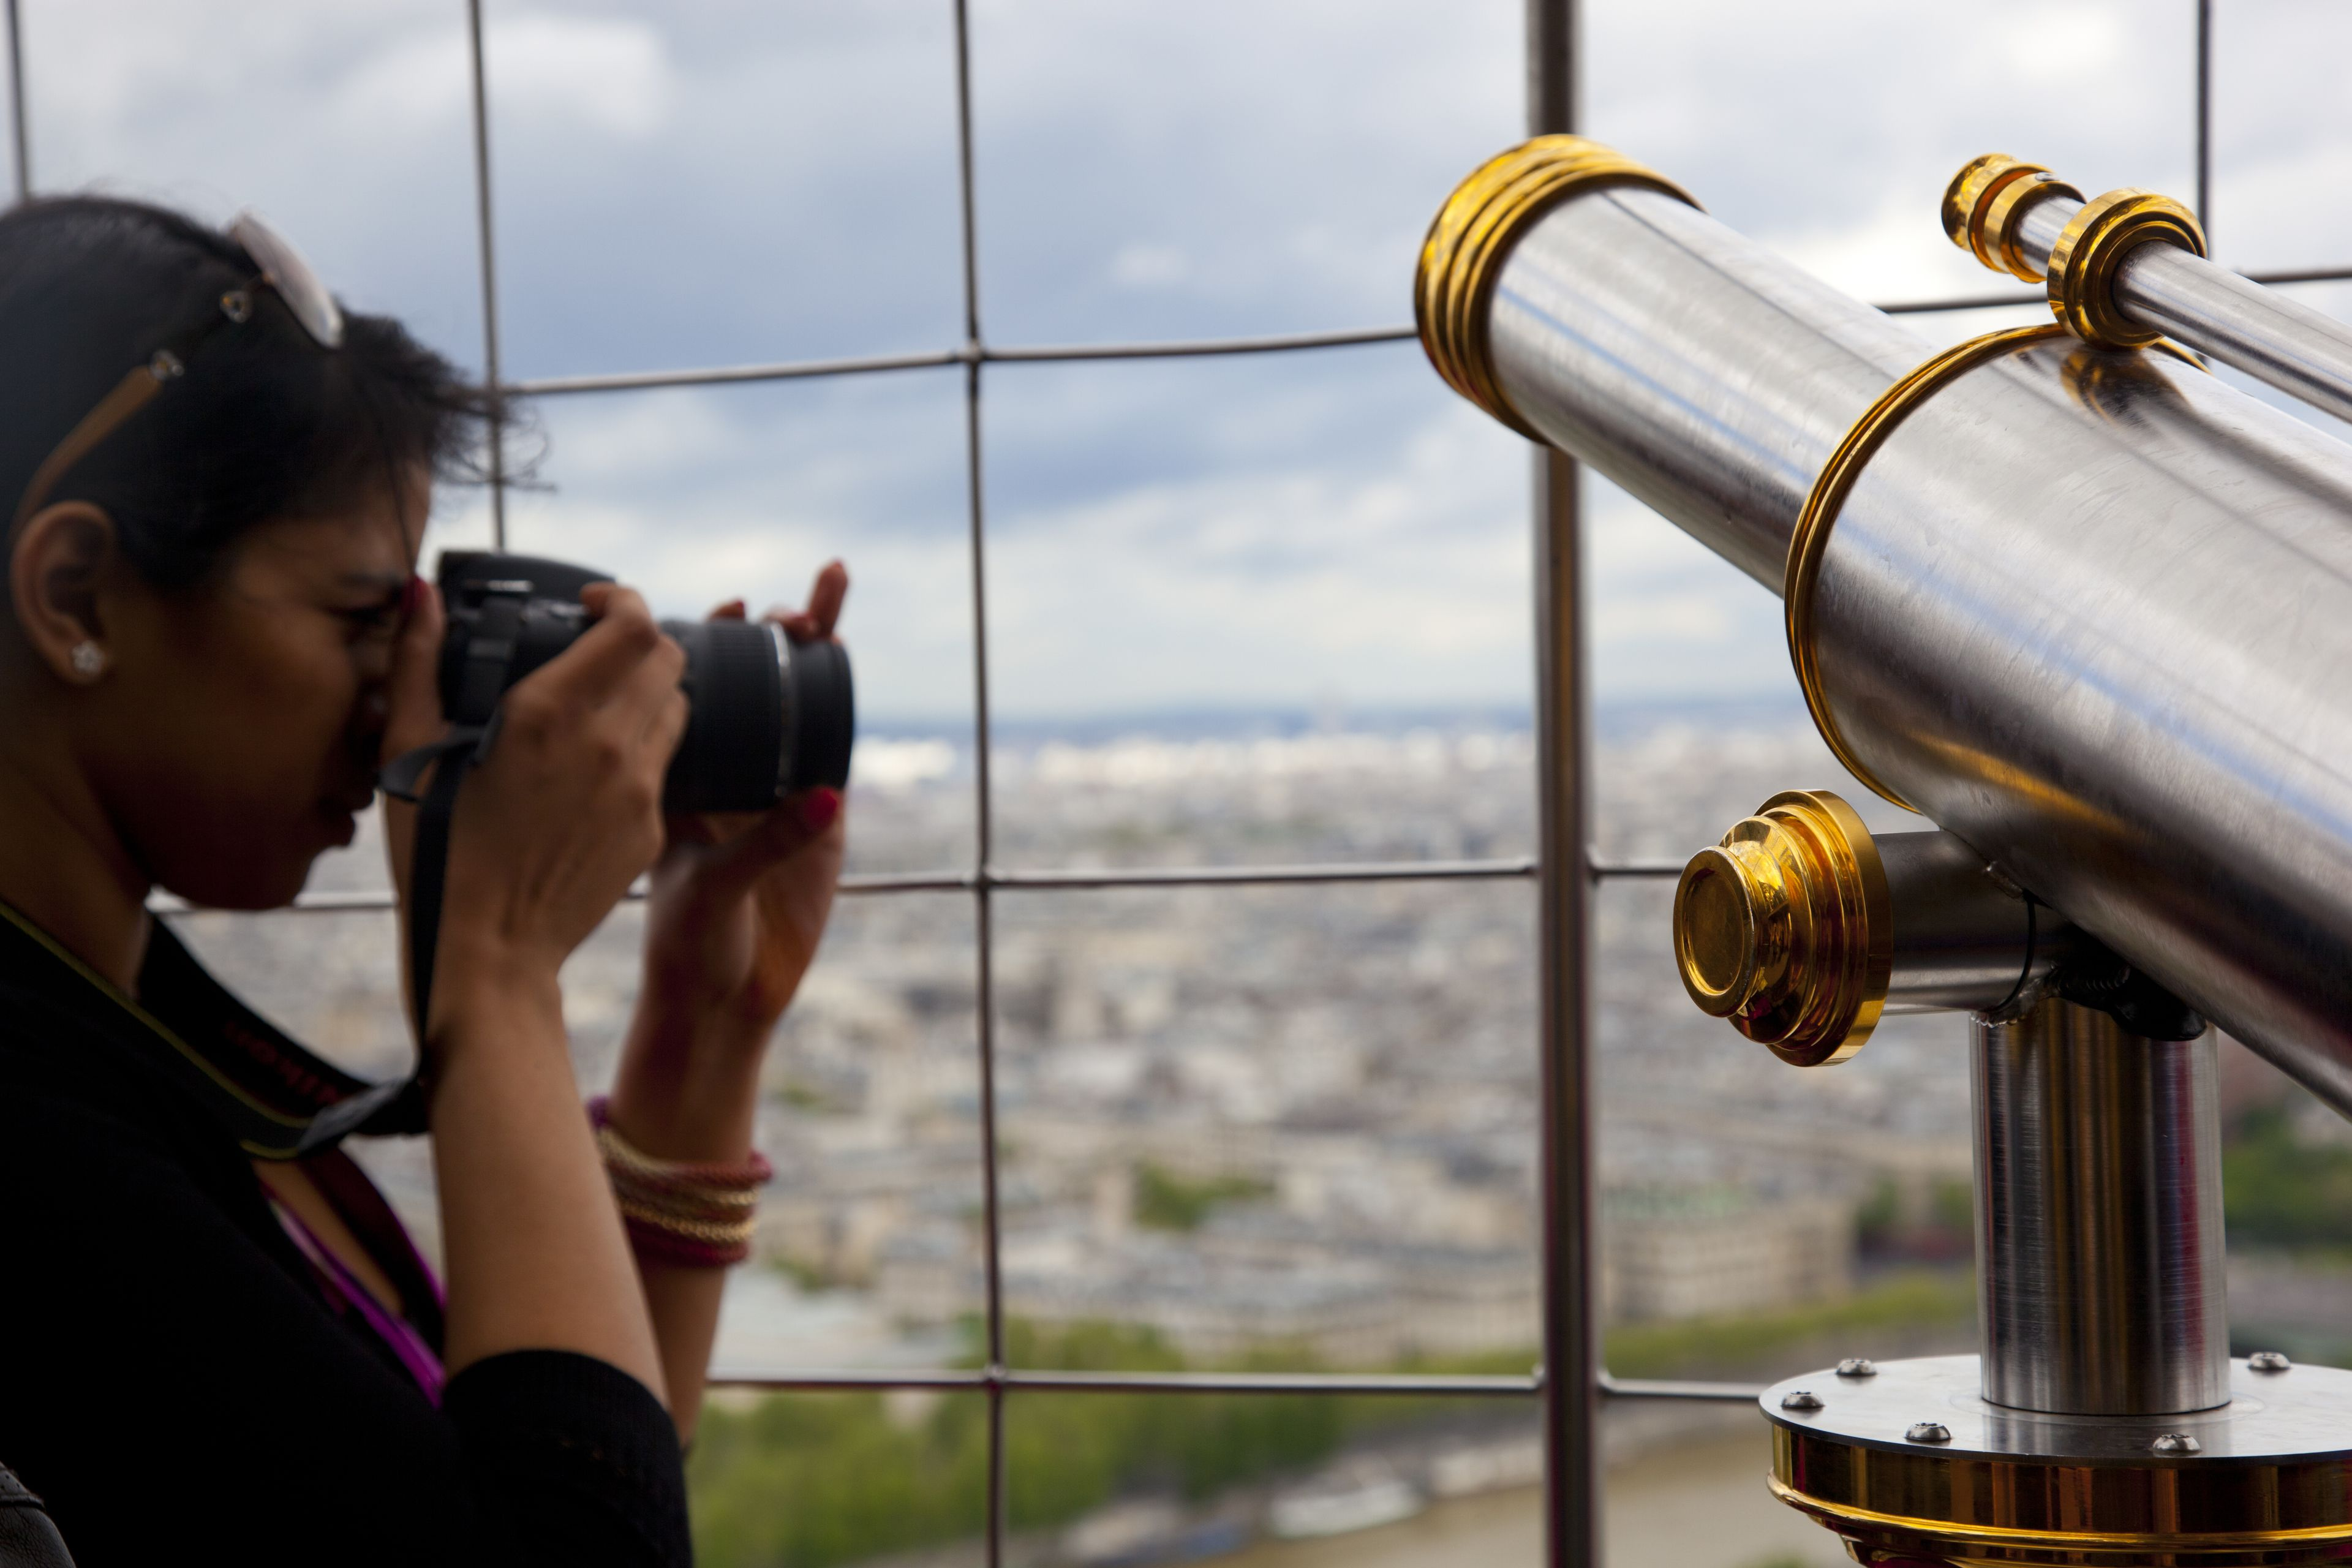 Woman taking a photo from the Eiffel Tower